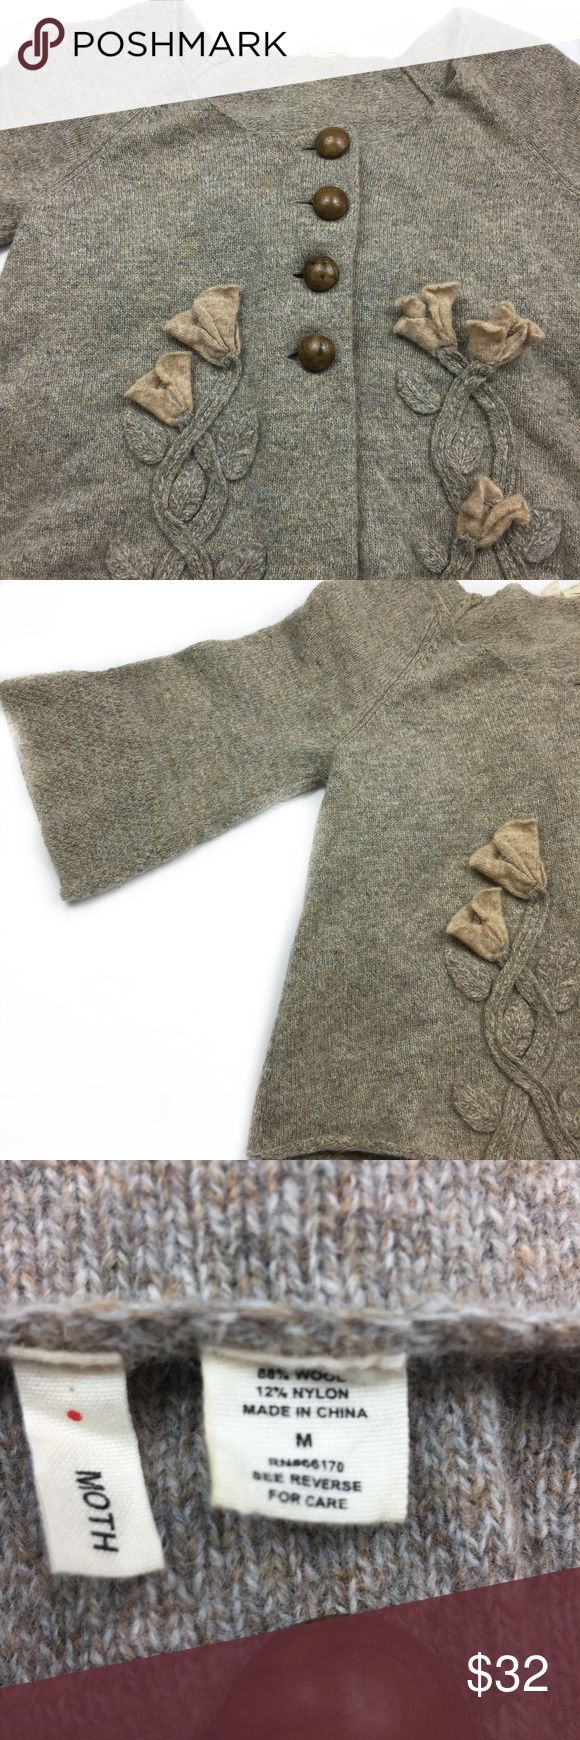 Moth women's 80% wool sweater  with knitted flower Moth women's 80% wool sweater  with knitted flowers size M. Lovely used.     We will ship all orders within 1 business days of payment (does not include Sunday or US Holidays).  If you are unsatisfied with your order, please contact us via email. Moth Sweaters